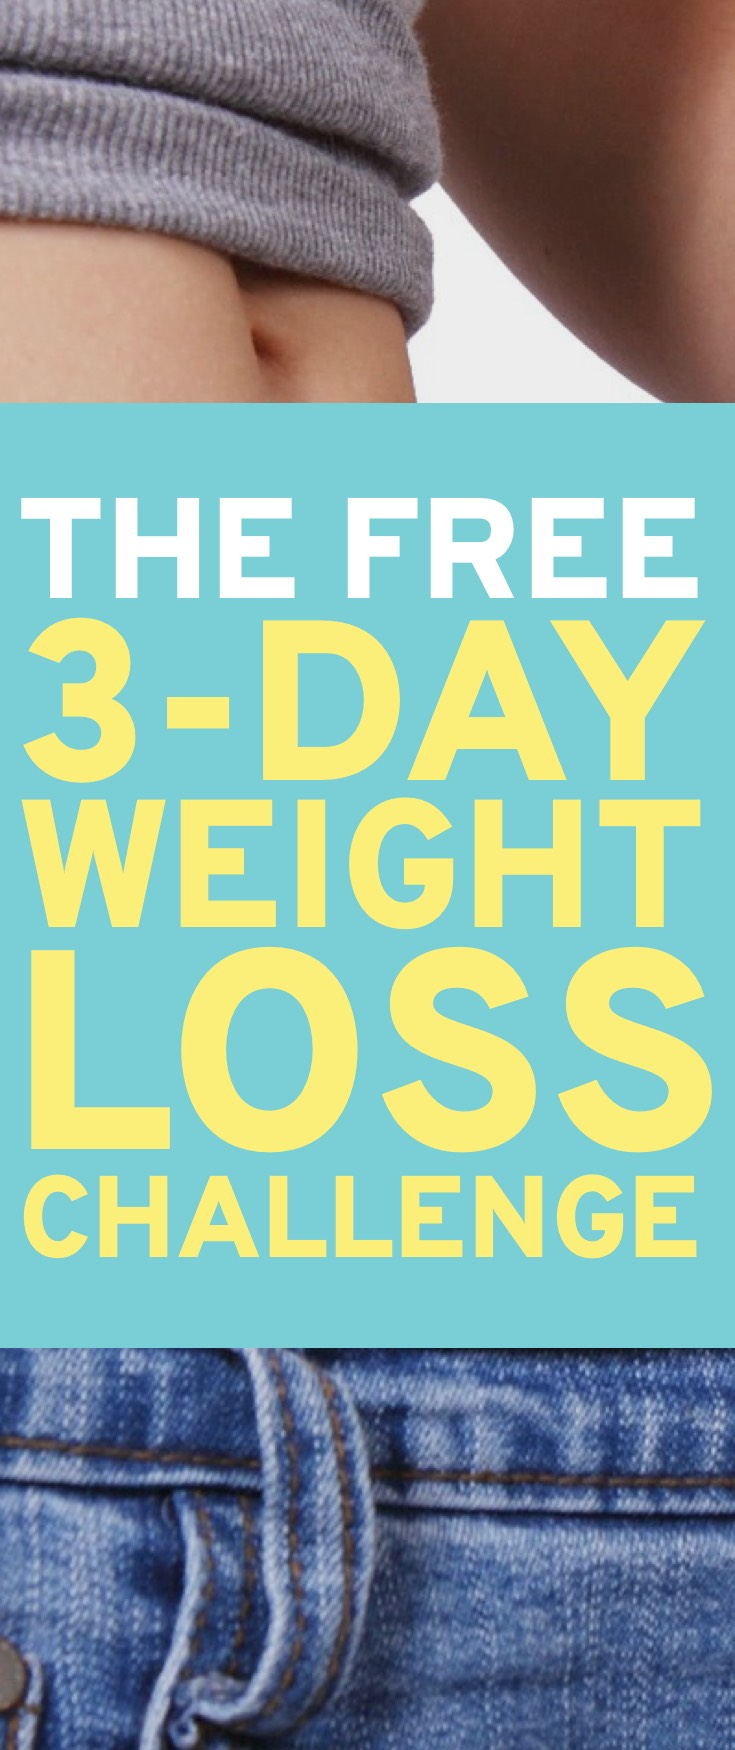 Transform your body in 3 days and change your life forever with the 3-day weight loss challenge.